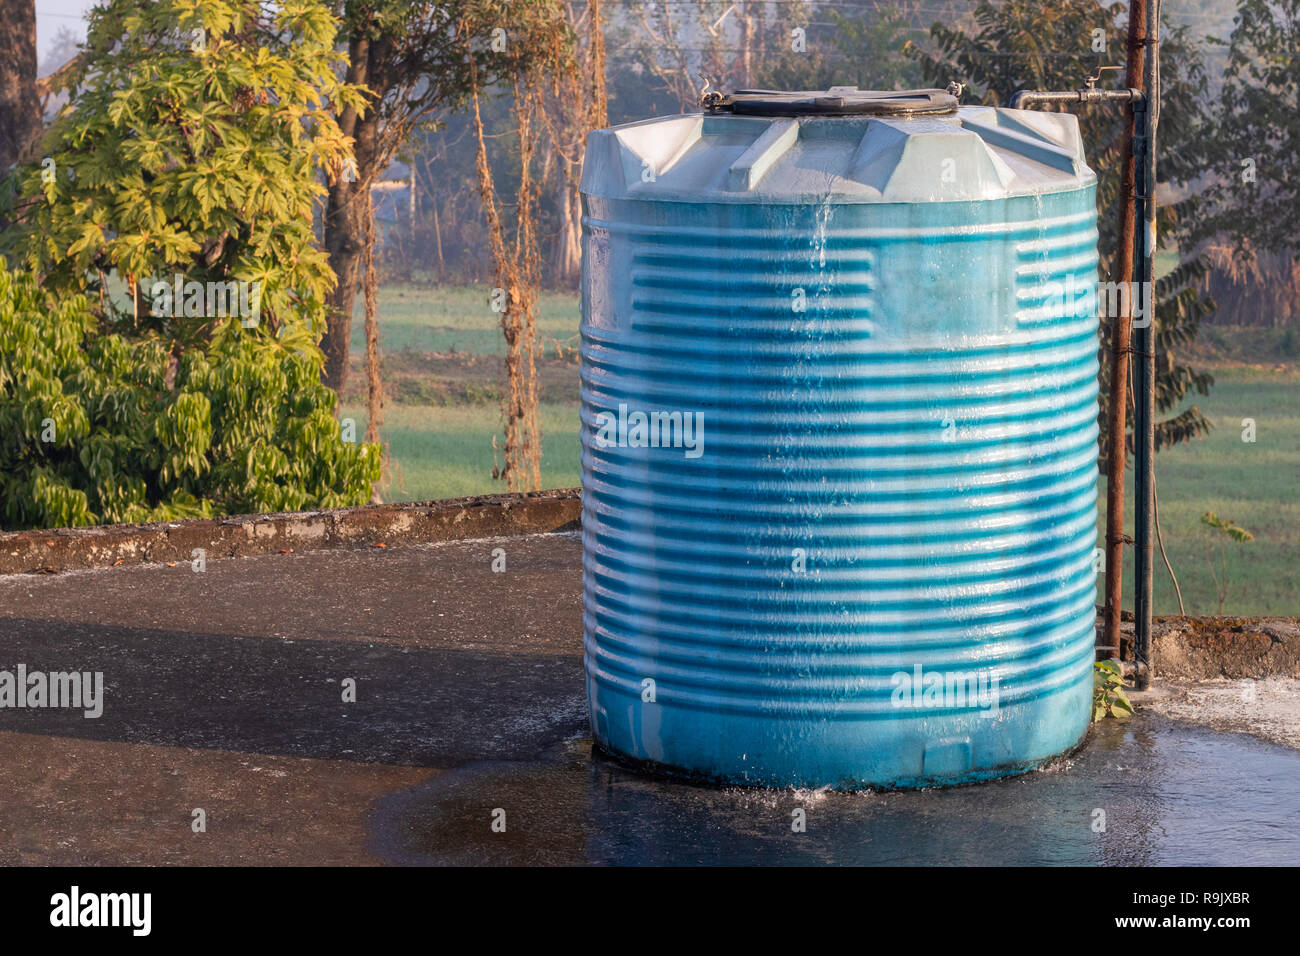 Water tank overflowing, wasting water - Stock Image